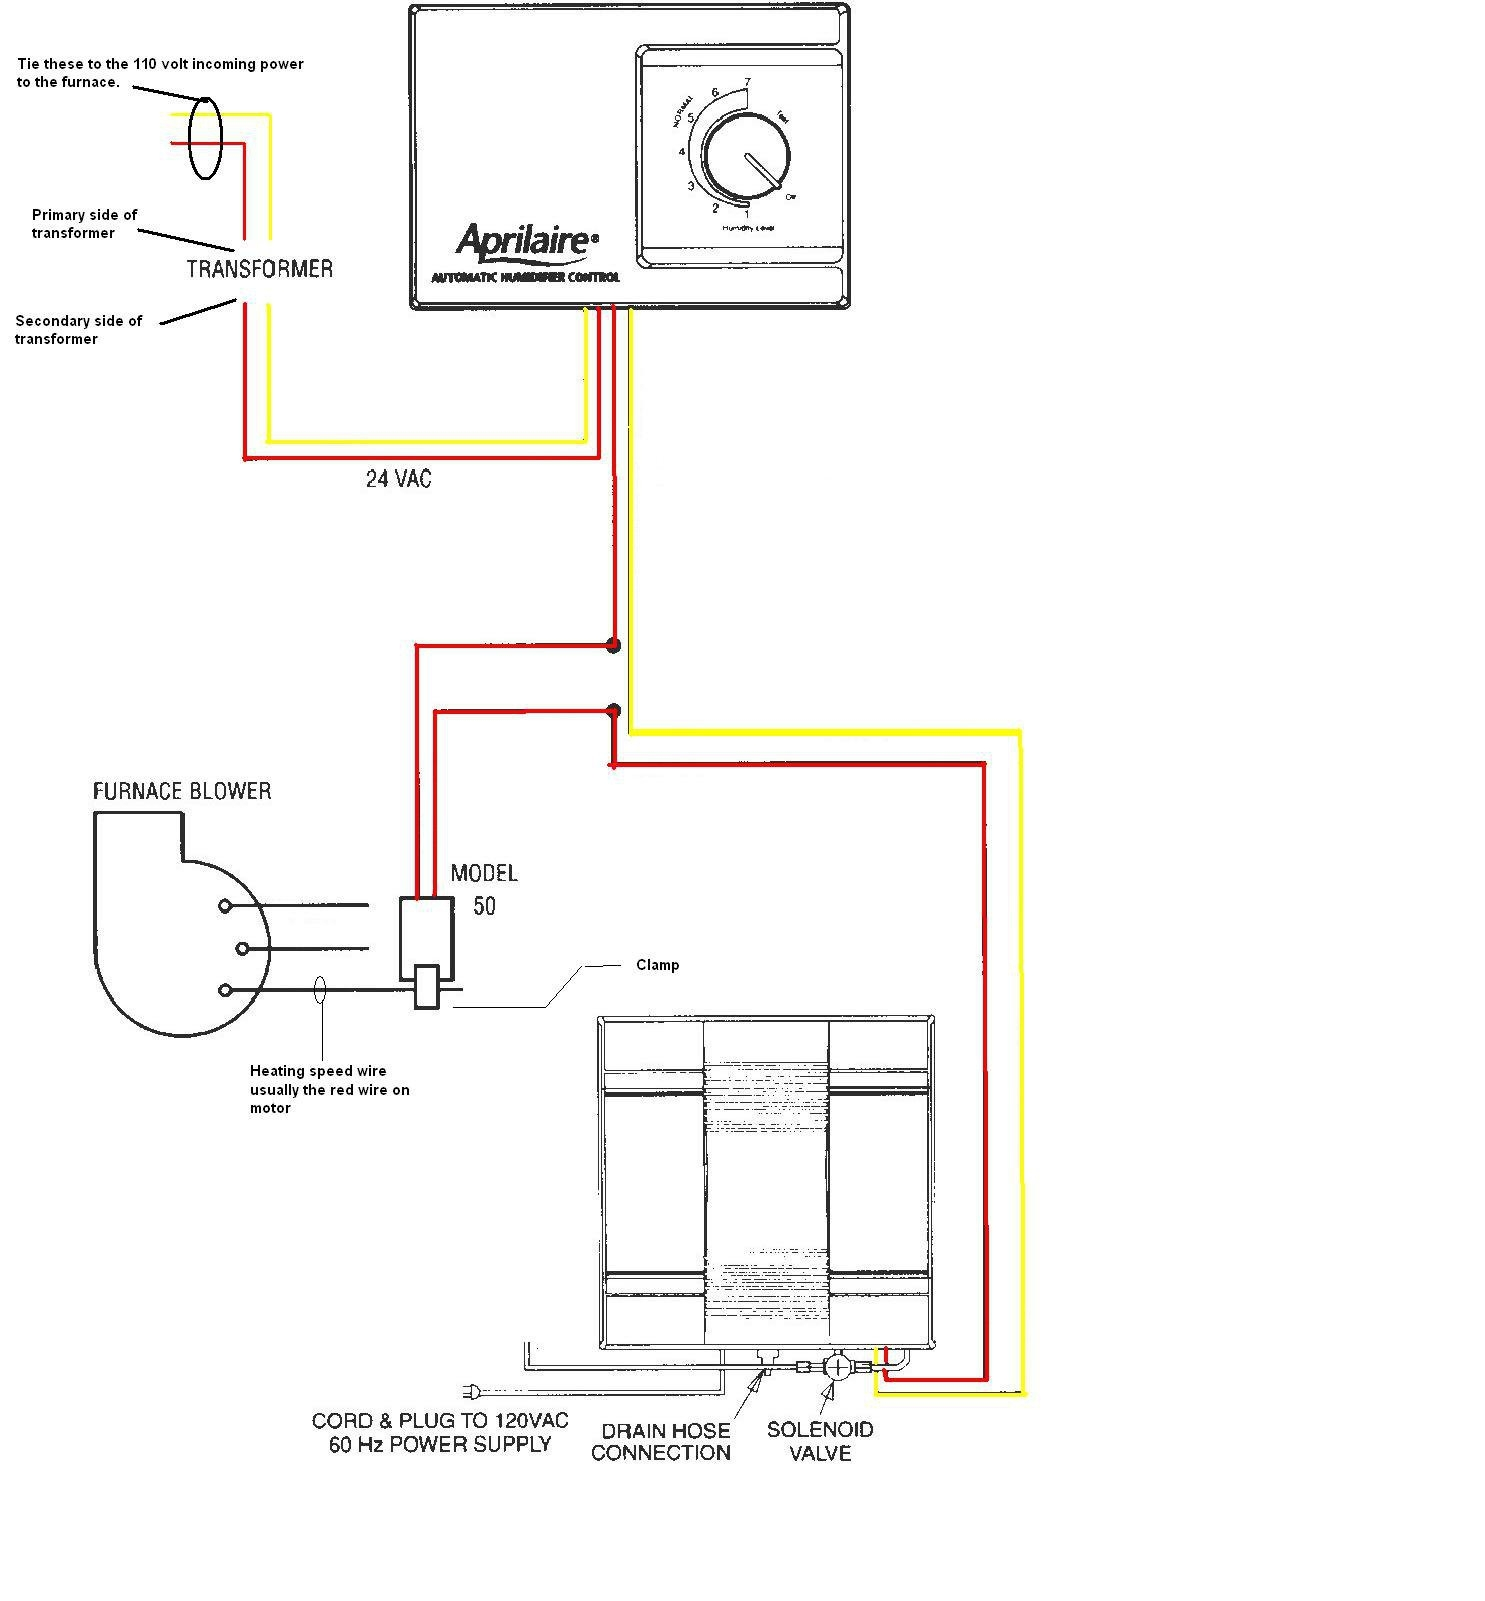 aprilaire humidifier wiring diagram Collection-honeywell power humidifier wiring diagram Collection Ecobee Wiring Diagram Fresh Ecobee Wiring Diagram Beautiful Best DOWNLOAD Wiring Diagram 12-t